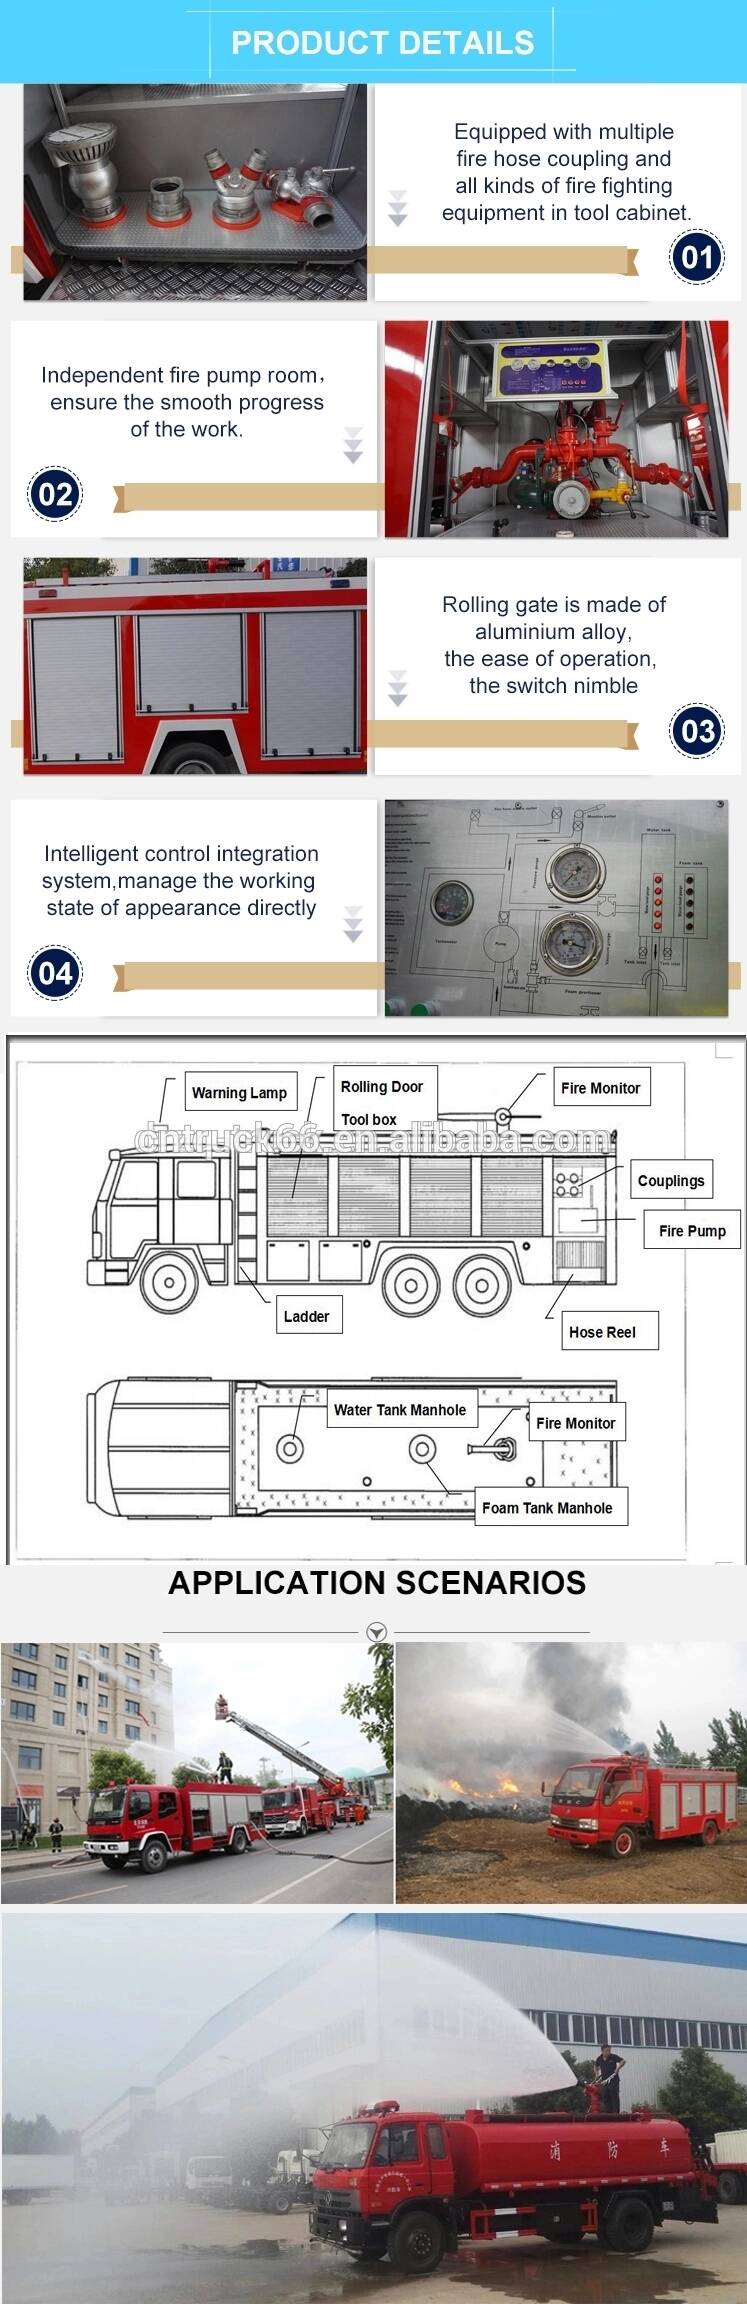 Fire truck detail structure diagram